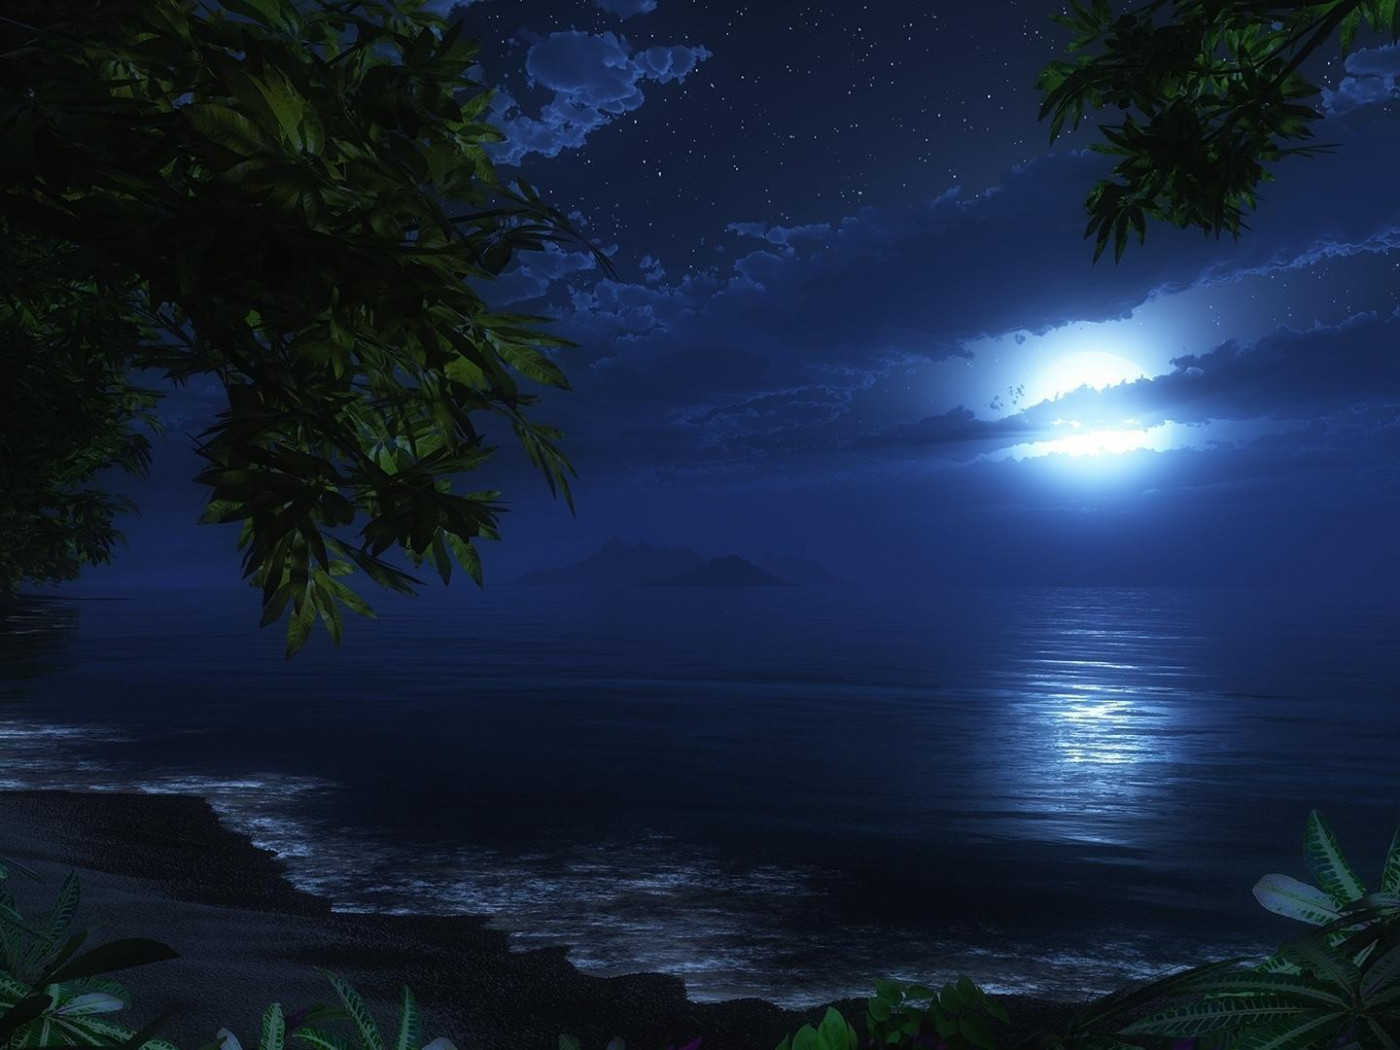 Ocean 3d Dynamic Wallpaper Moonlit Beach Hd Desktop Wallpaper Widescreen High